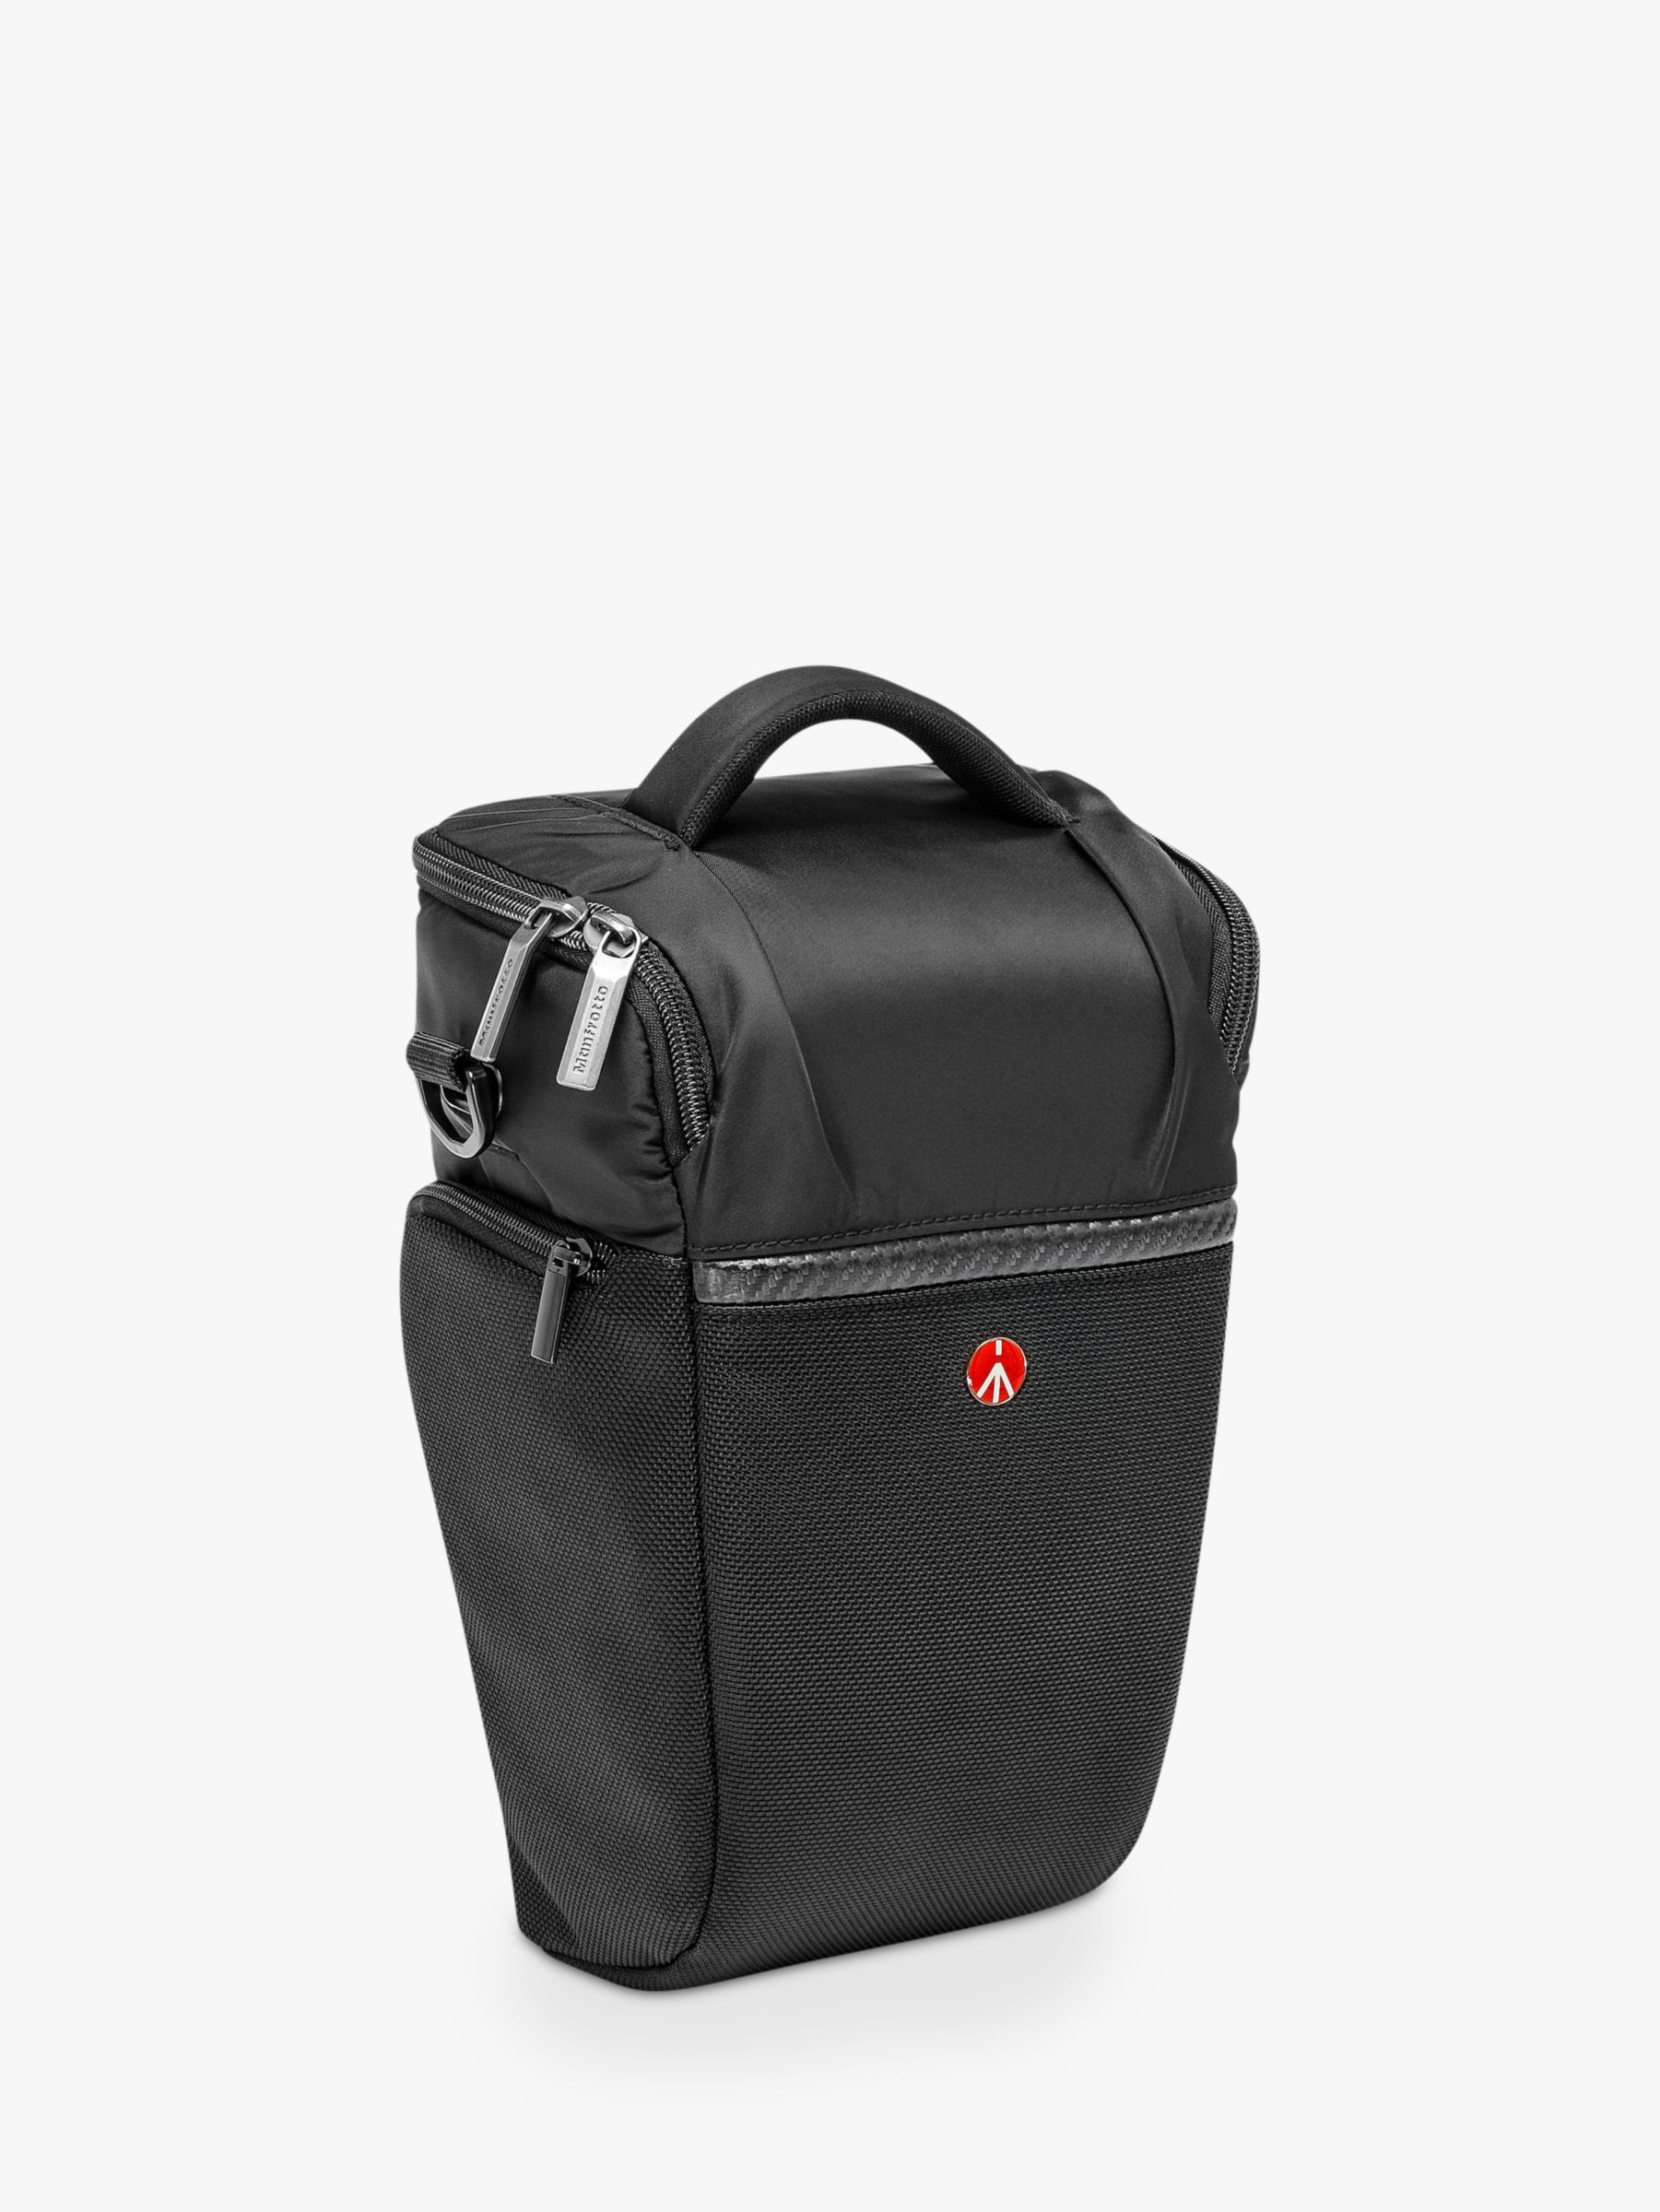 Manfrotto Manfrotto Advanced L Camera Holster Bag for DSLRs, Black